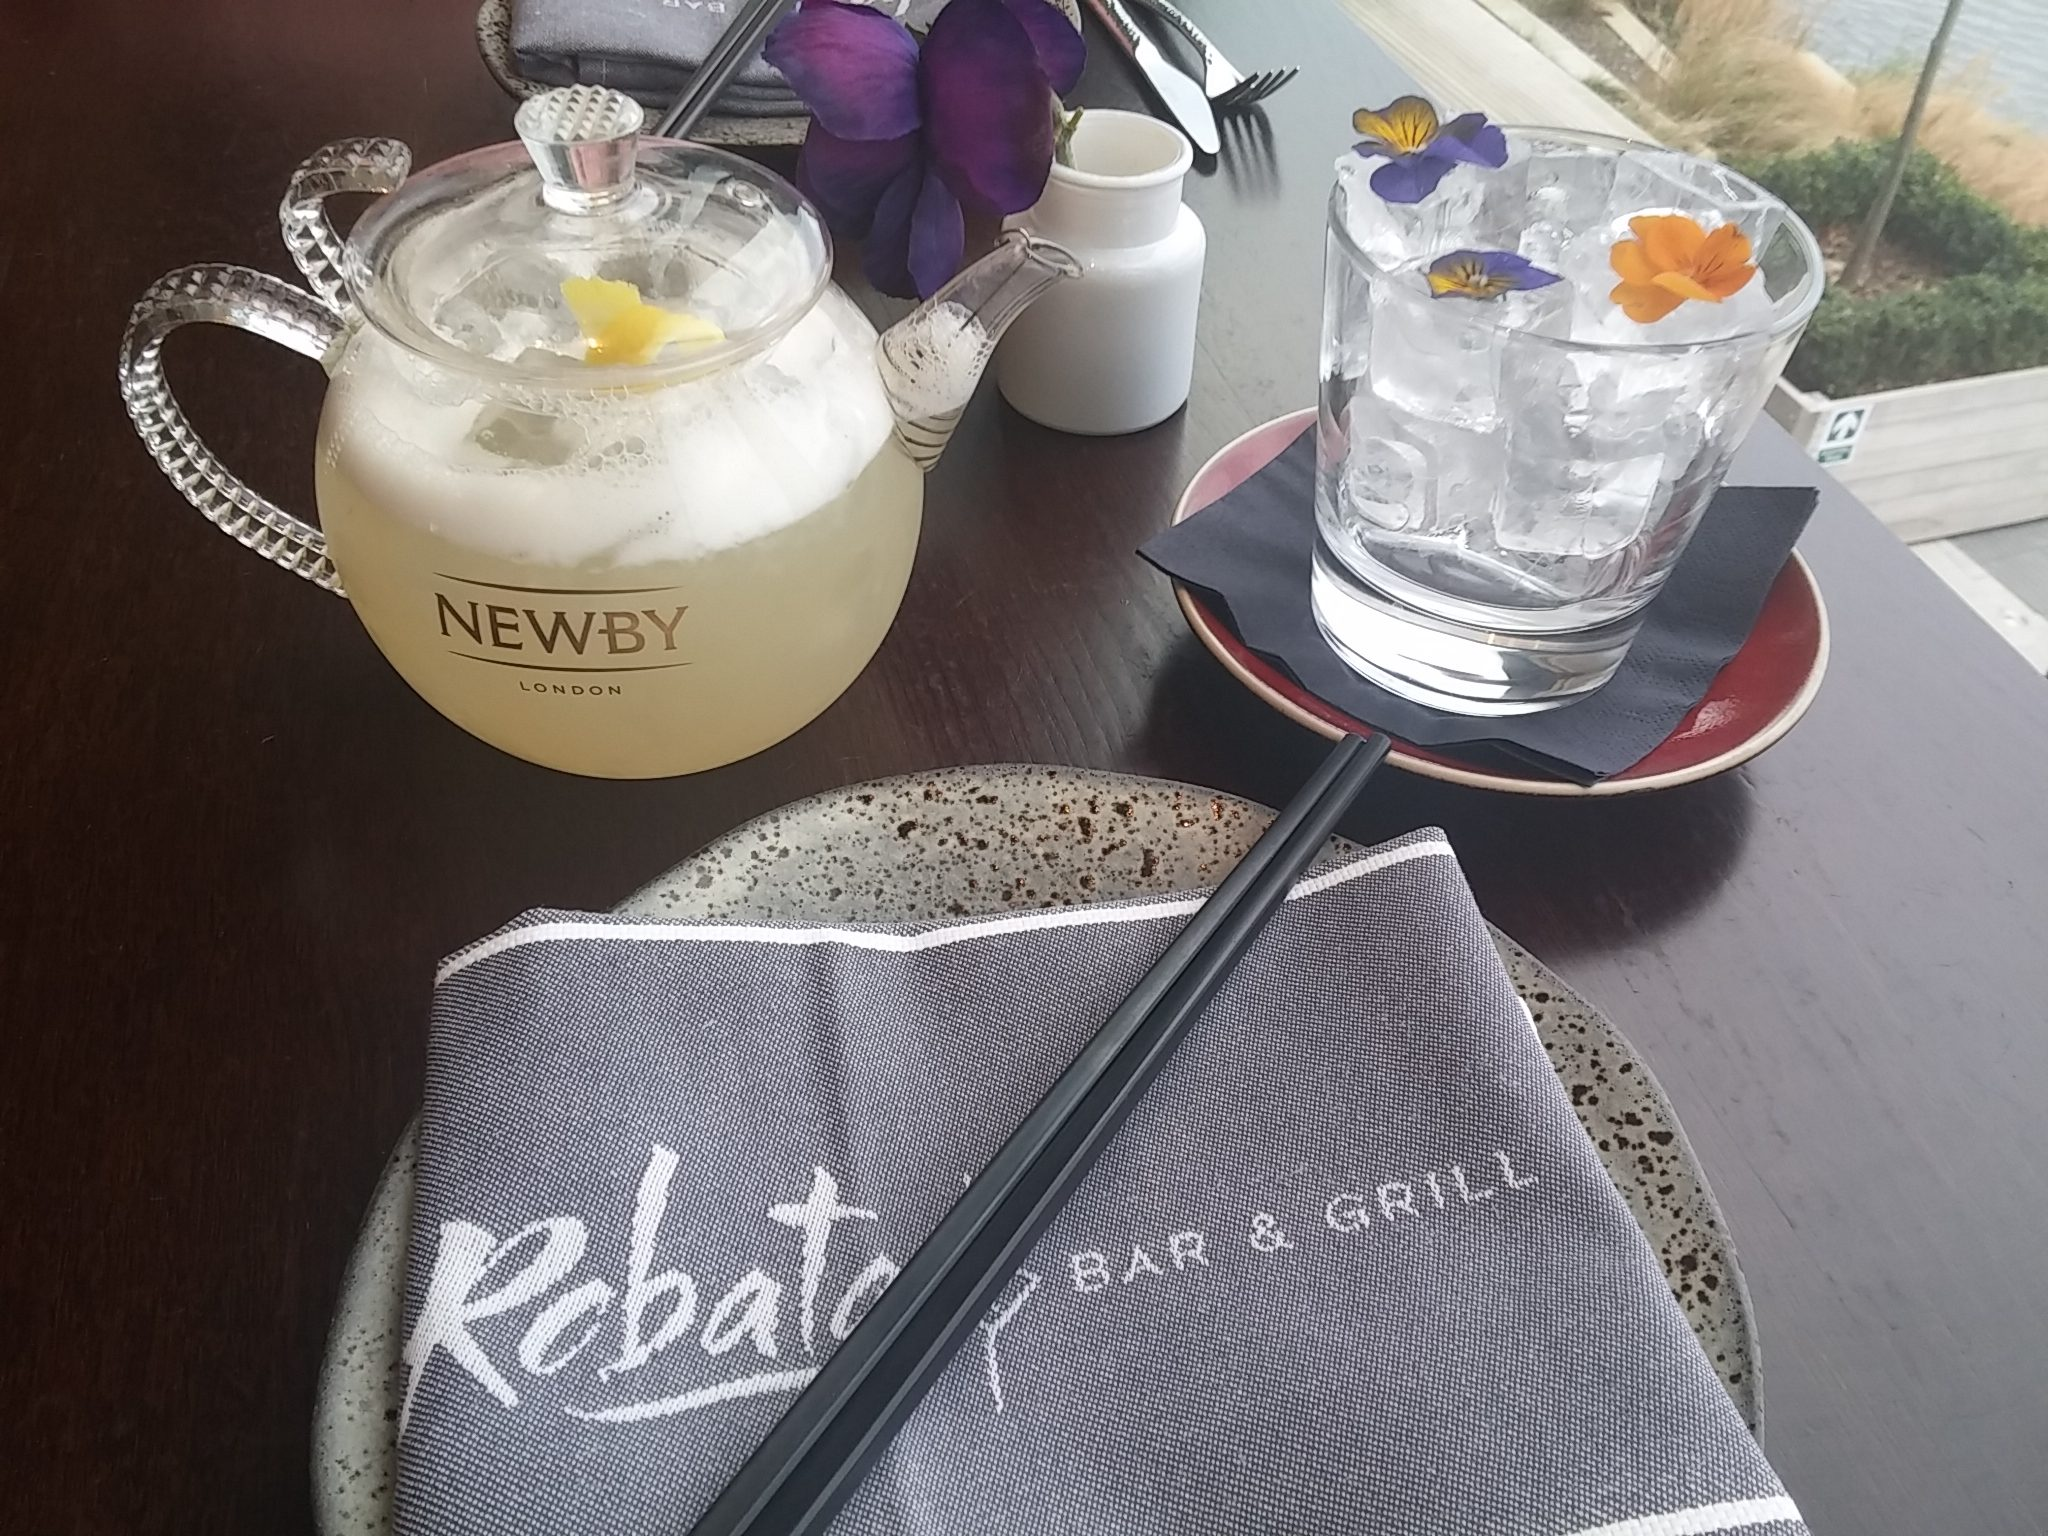 Restaurant review: Robata Bar & Grill, Resorts World, Birmingham